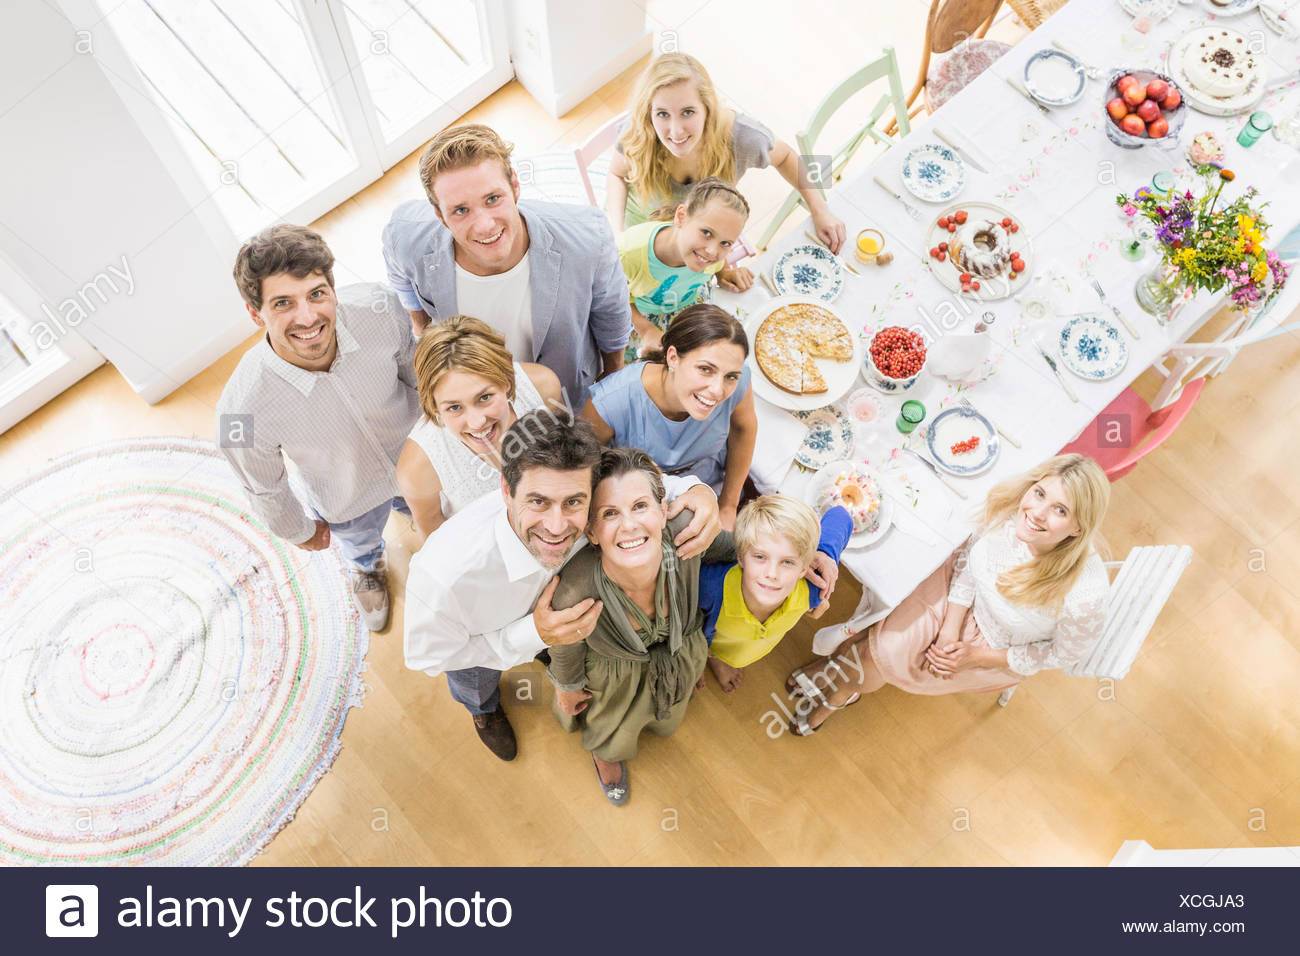 Overhead view of family in dining room at  party - Stock Image